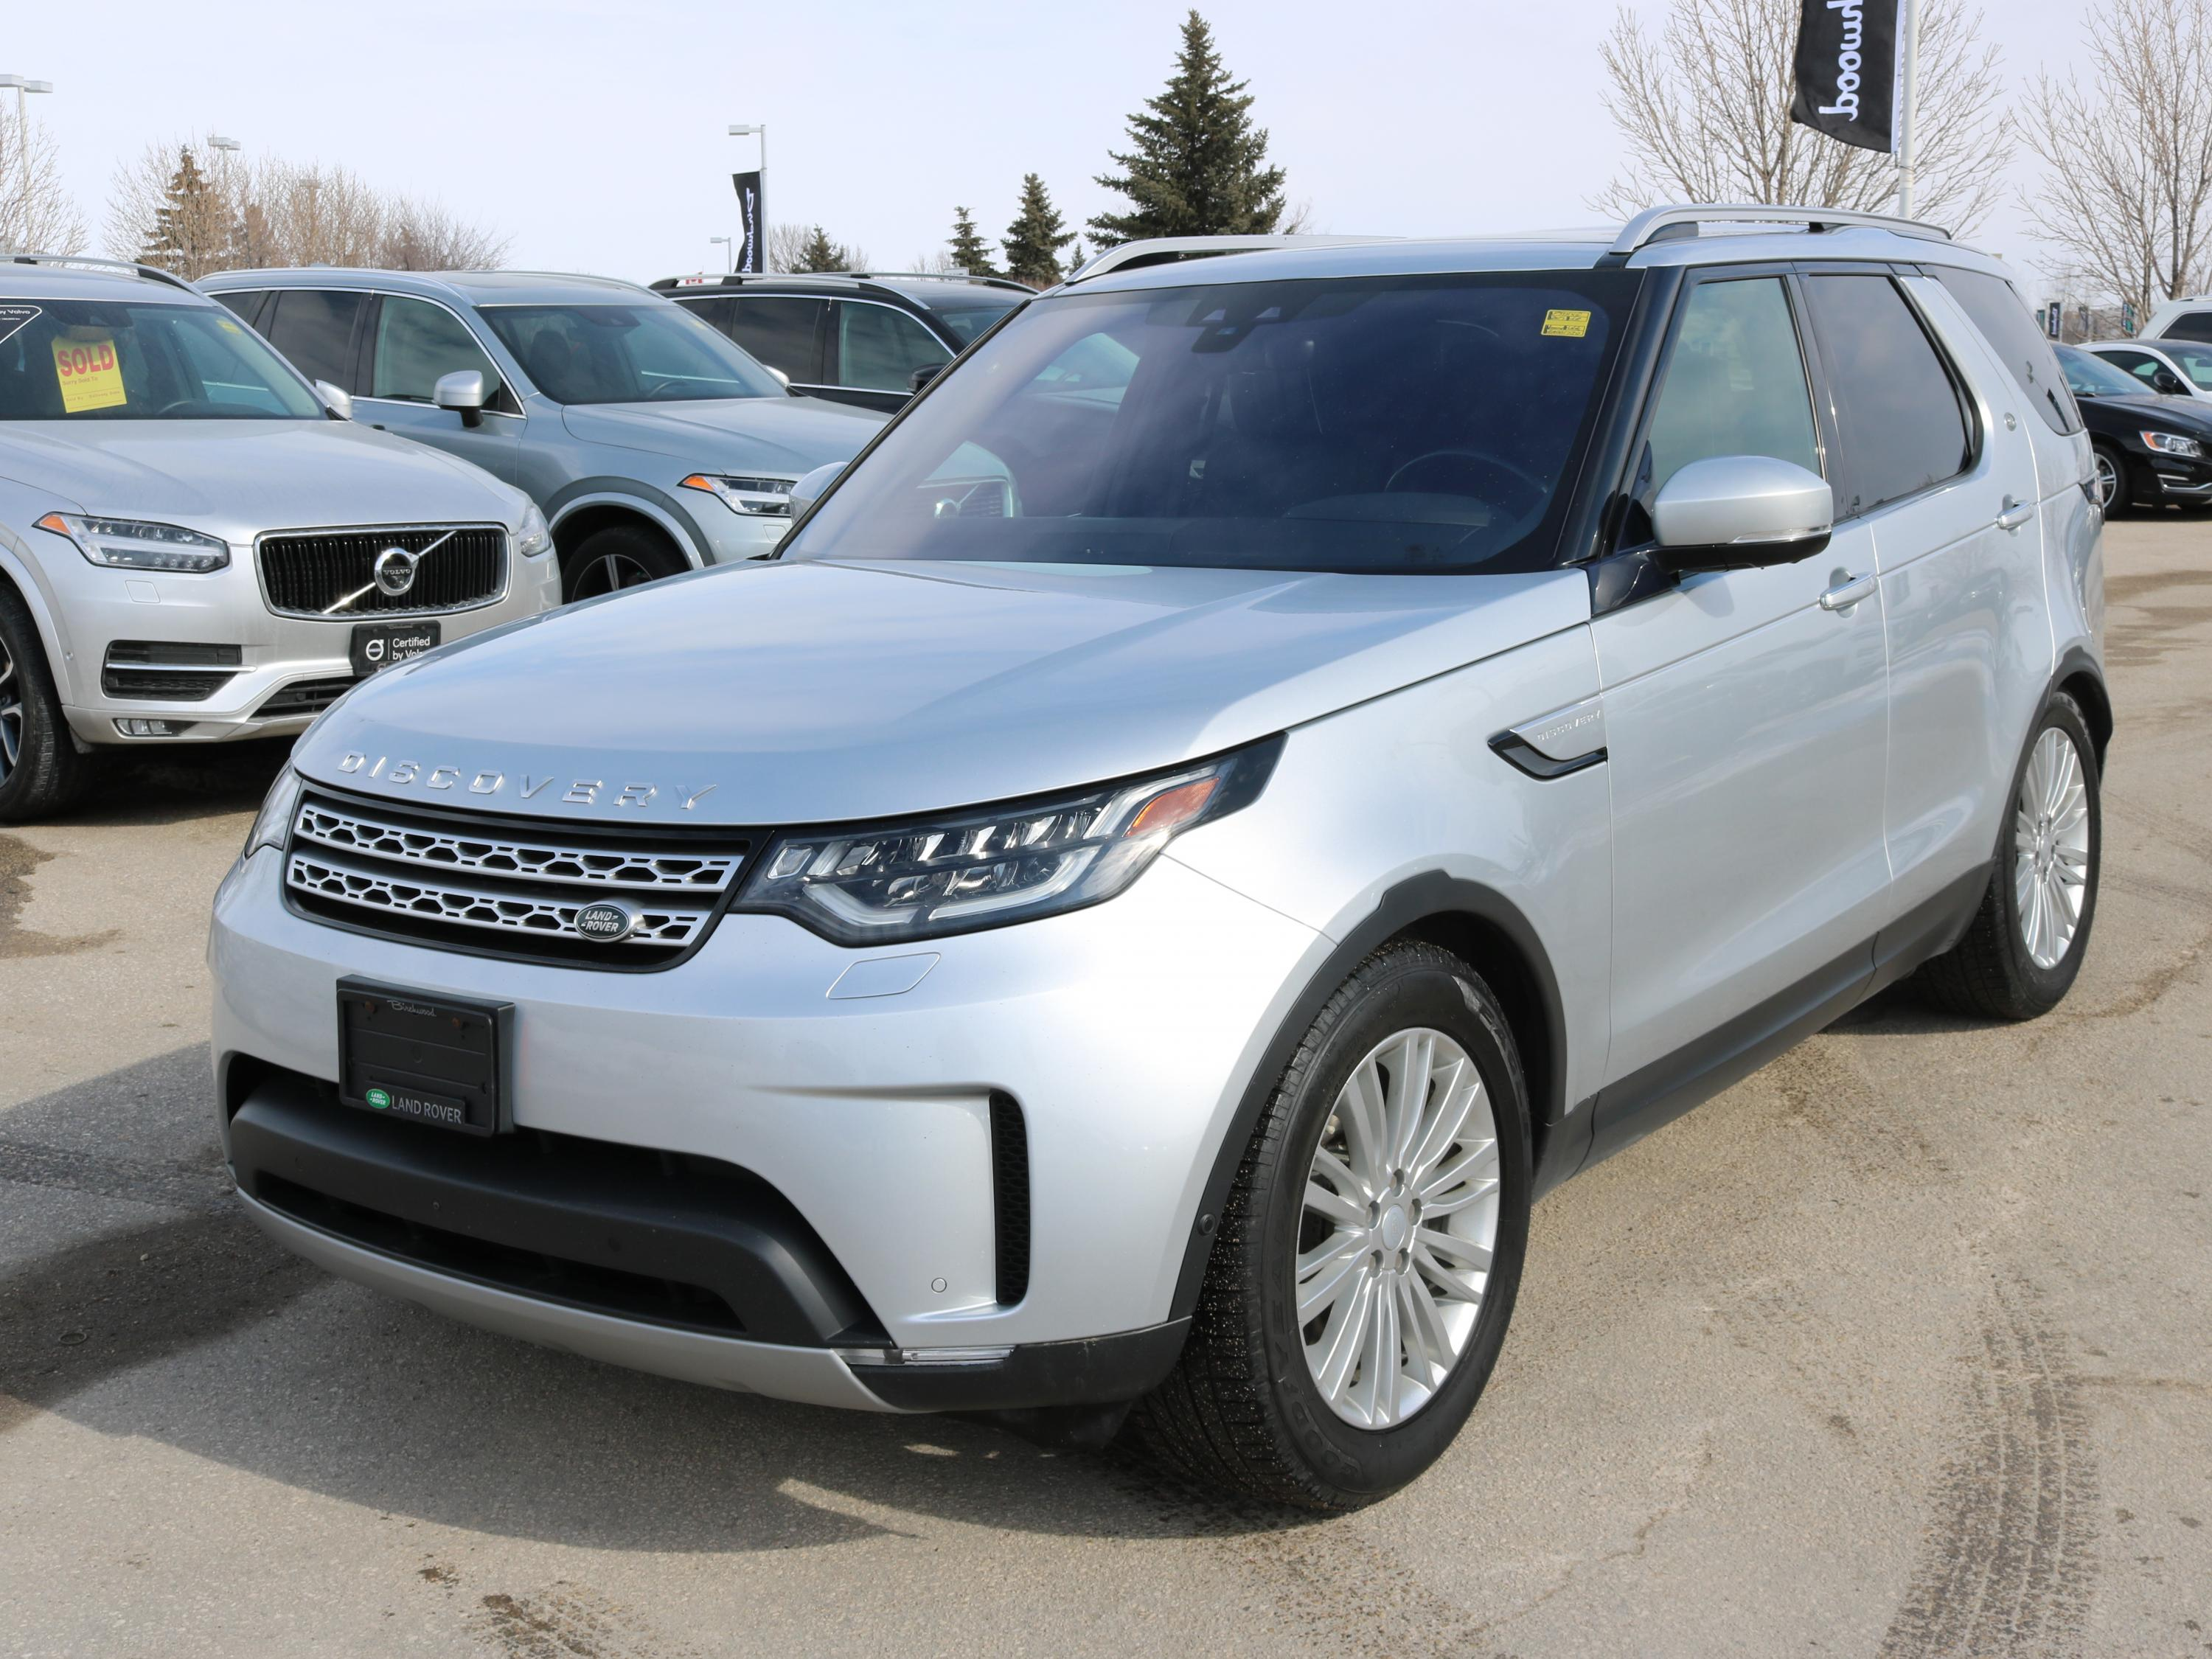 Pre-Owned 2017 Land Rover Discovery HSE Luxury Diesel *Bonus: Includes the Extended Warranty!*